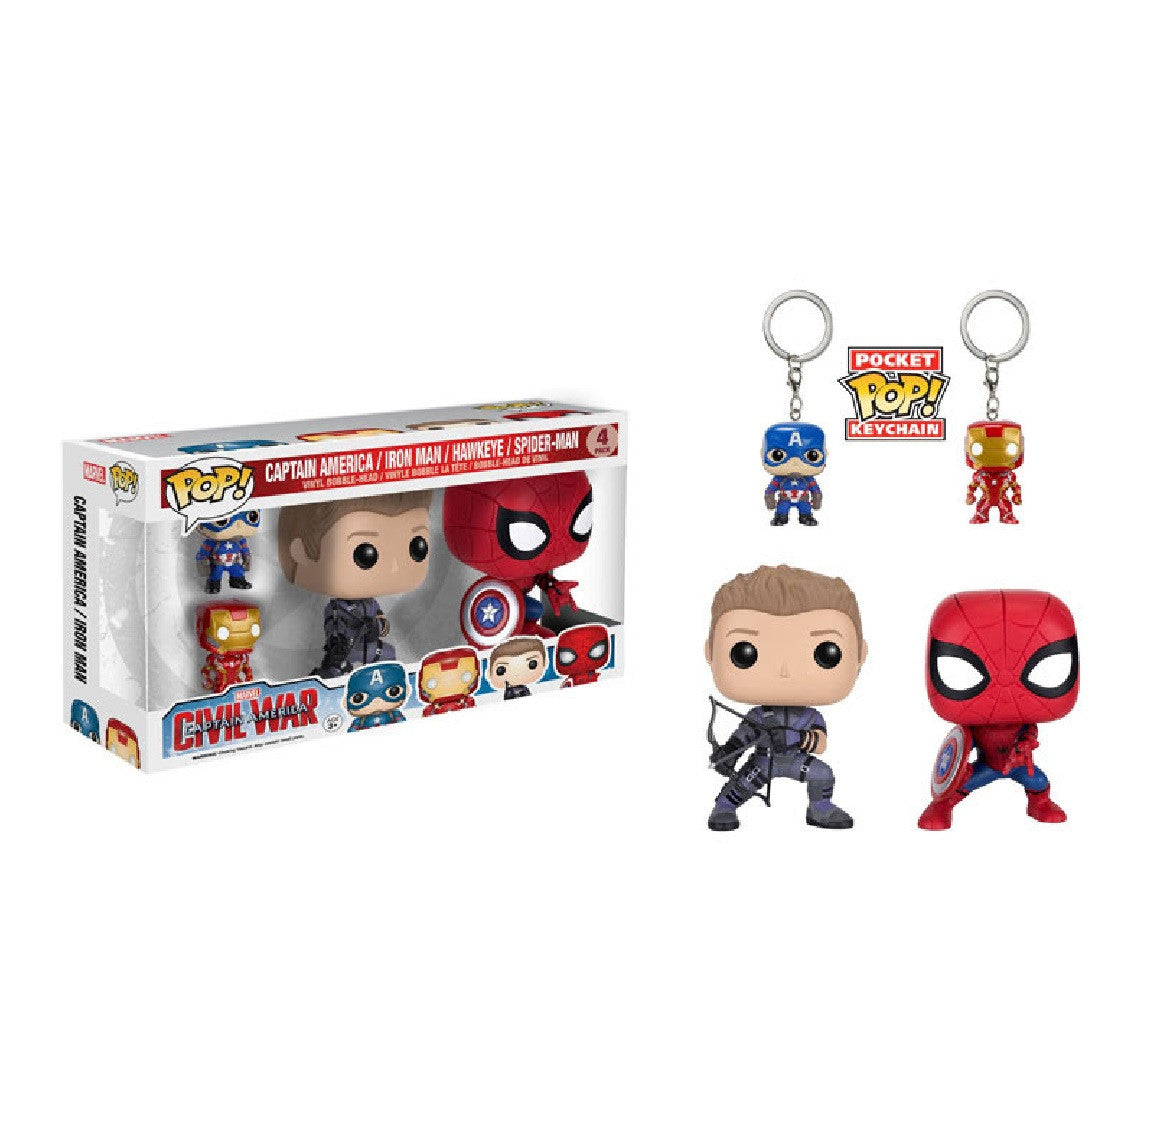 Marvel Pop! Vinyl Civil War 4 Pack [Captain America/Iron Man/Hawkeye/Spiderman]